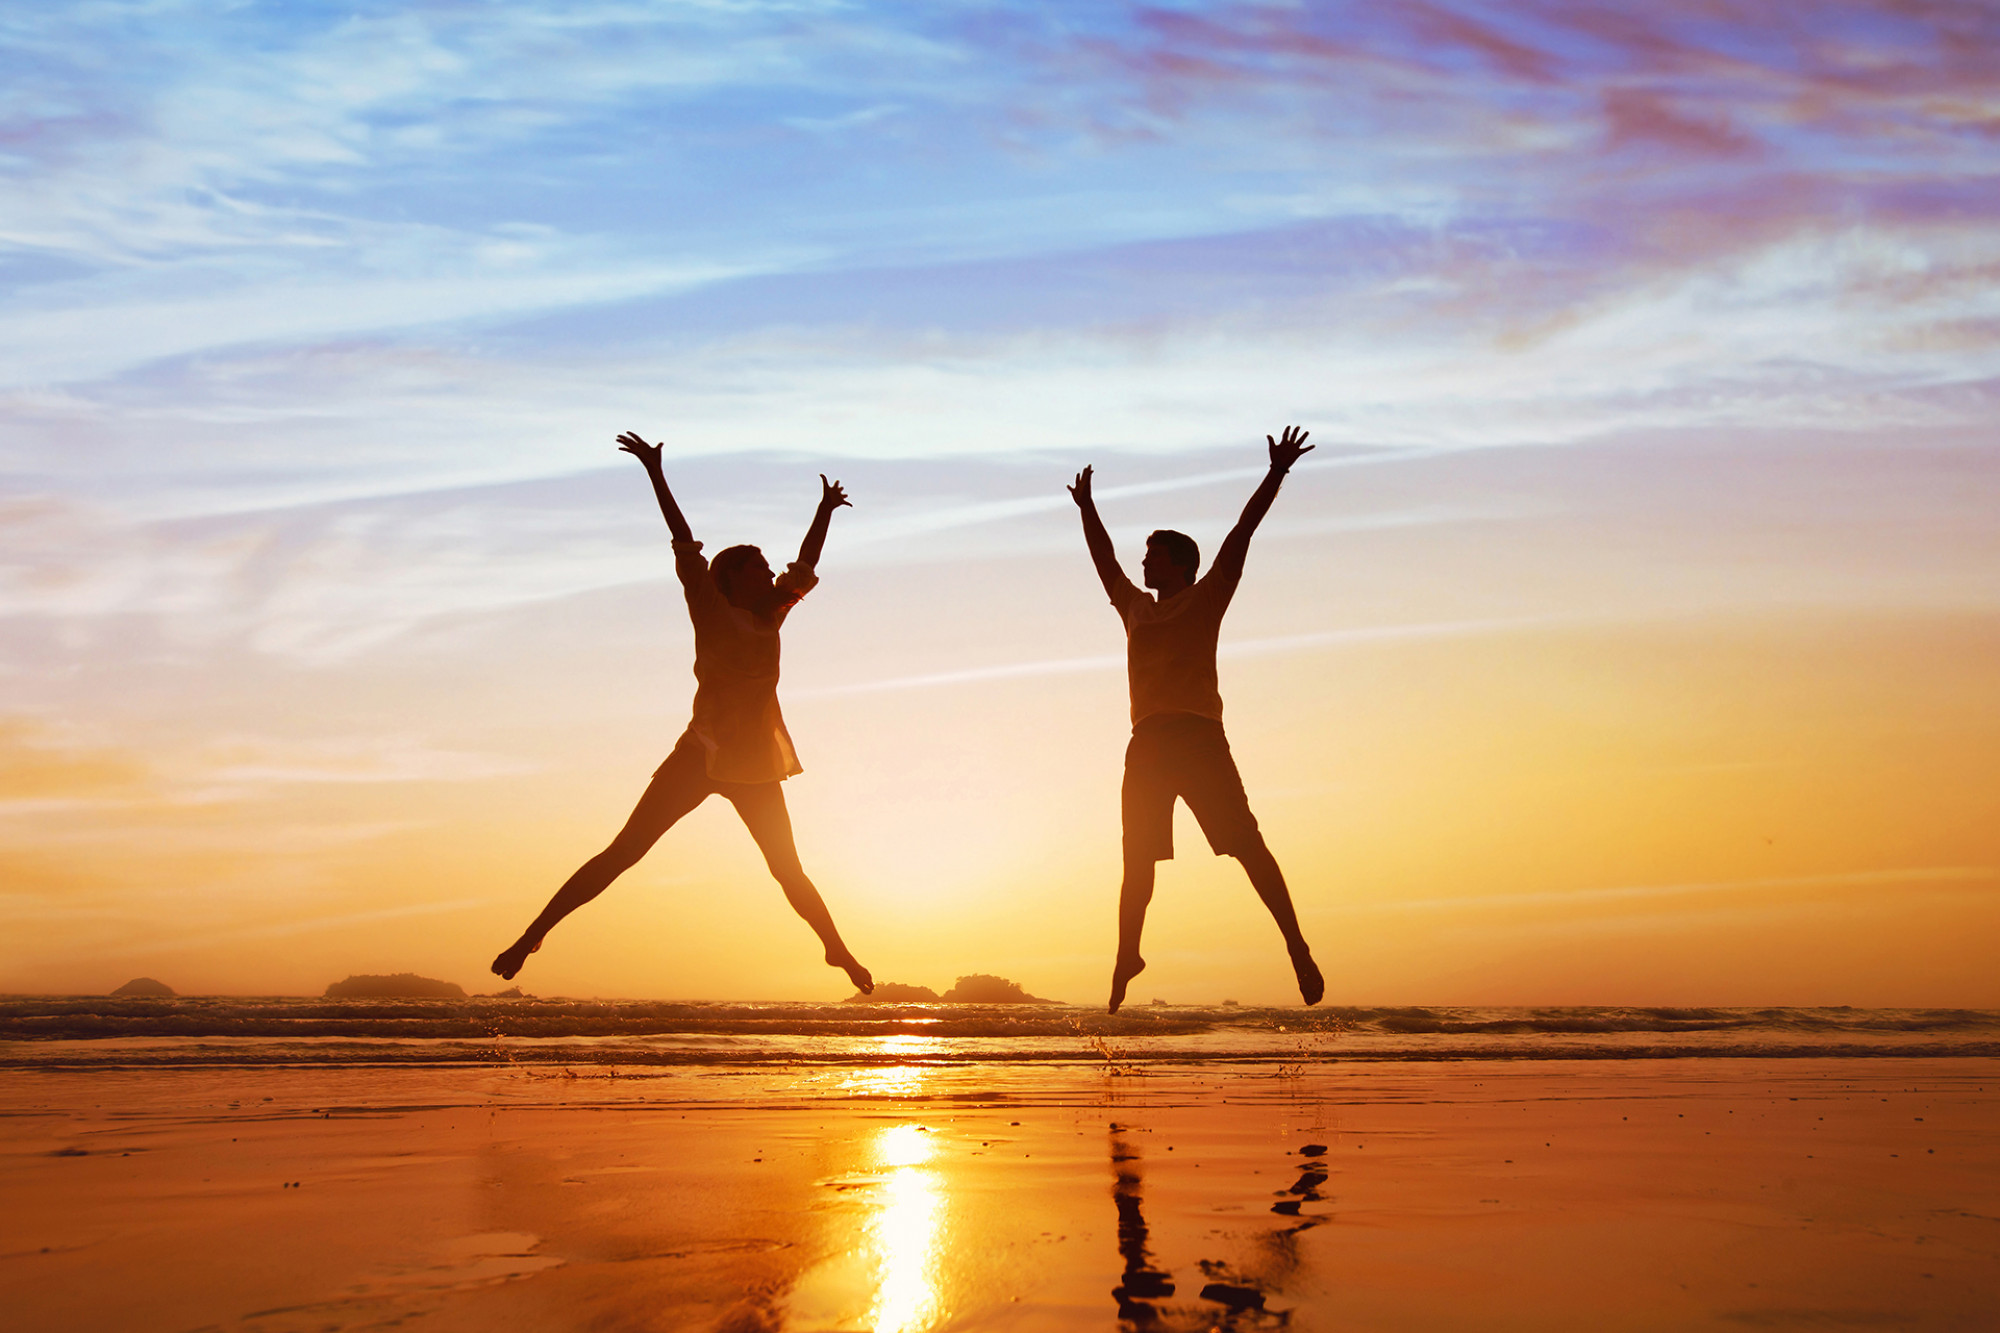 Silhouette of man and woman jumping with arms in the air on a beach during sunset